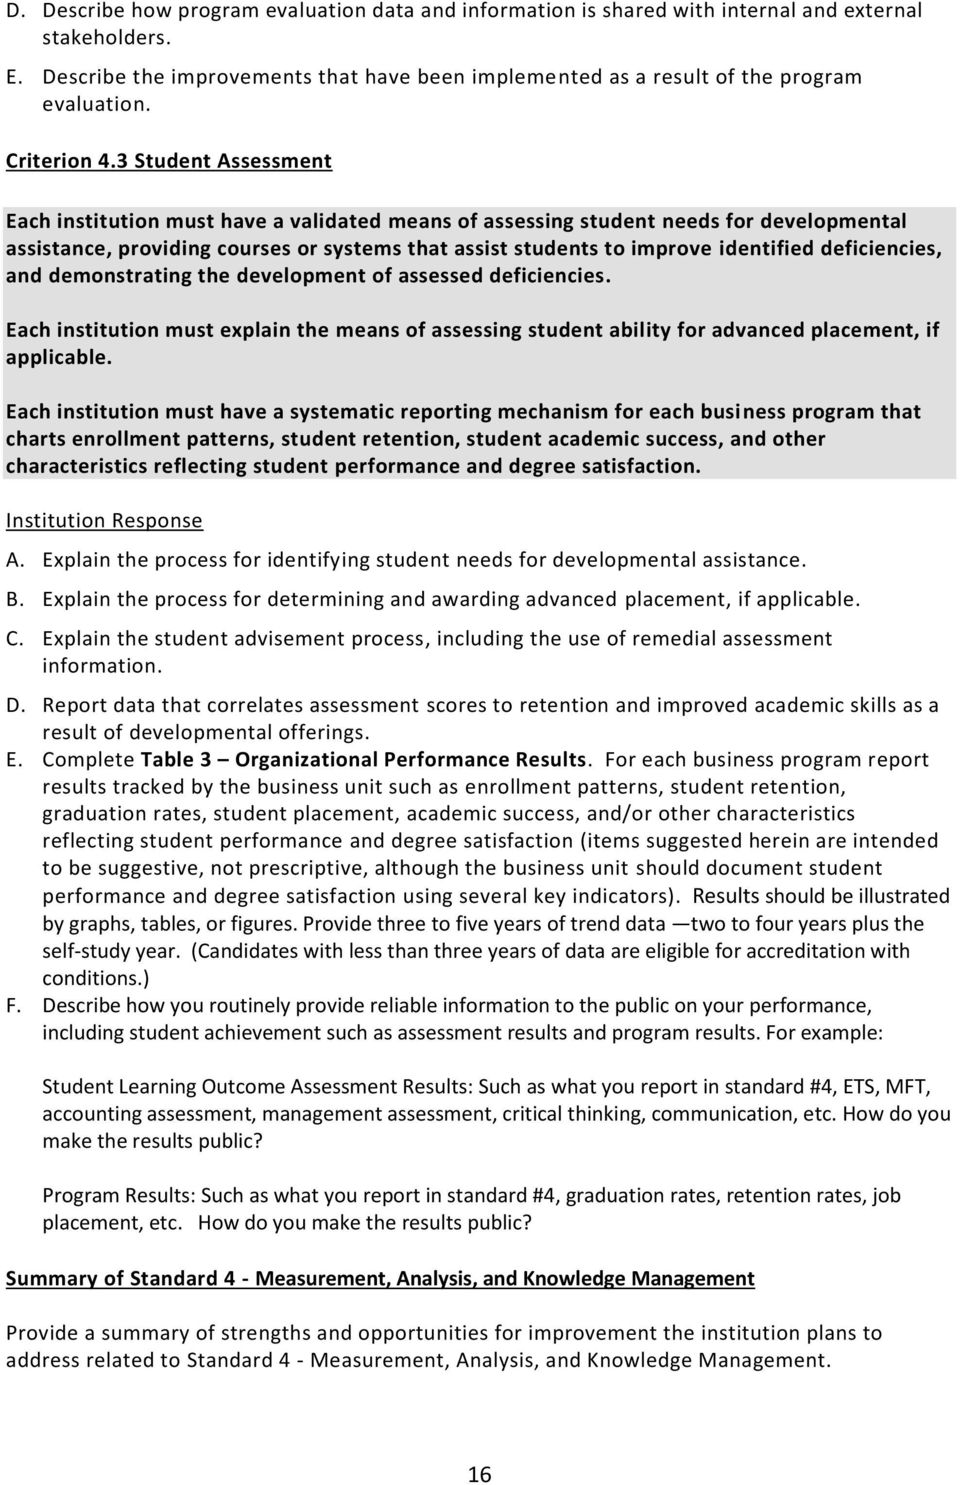 3 Student Assessment Each institution must have a validated means of assessing student needs for developmental assistance, providing courses or systems that assist students to improve identified